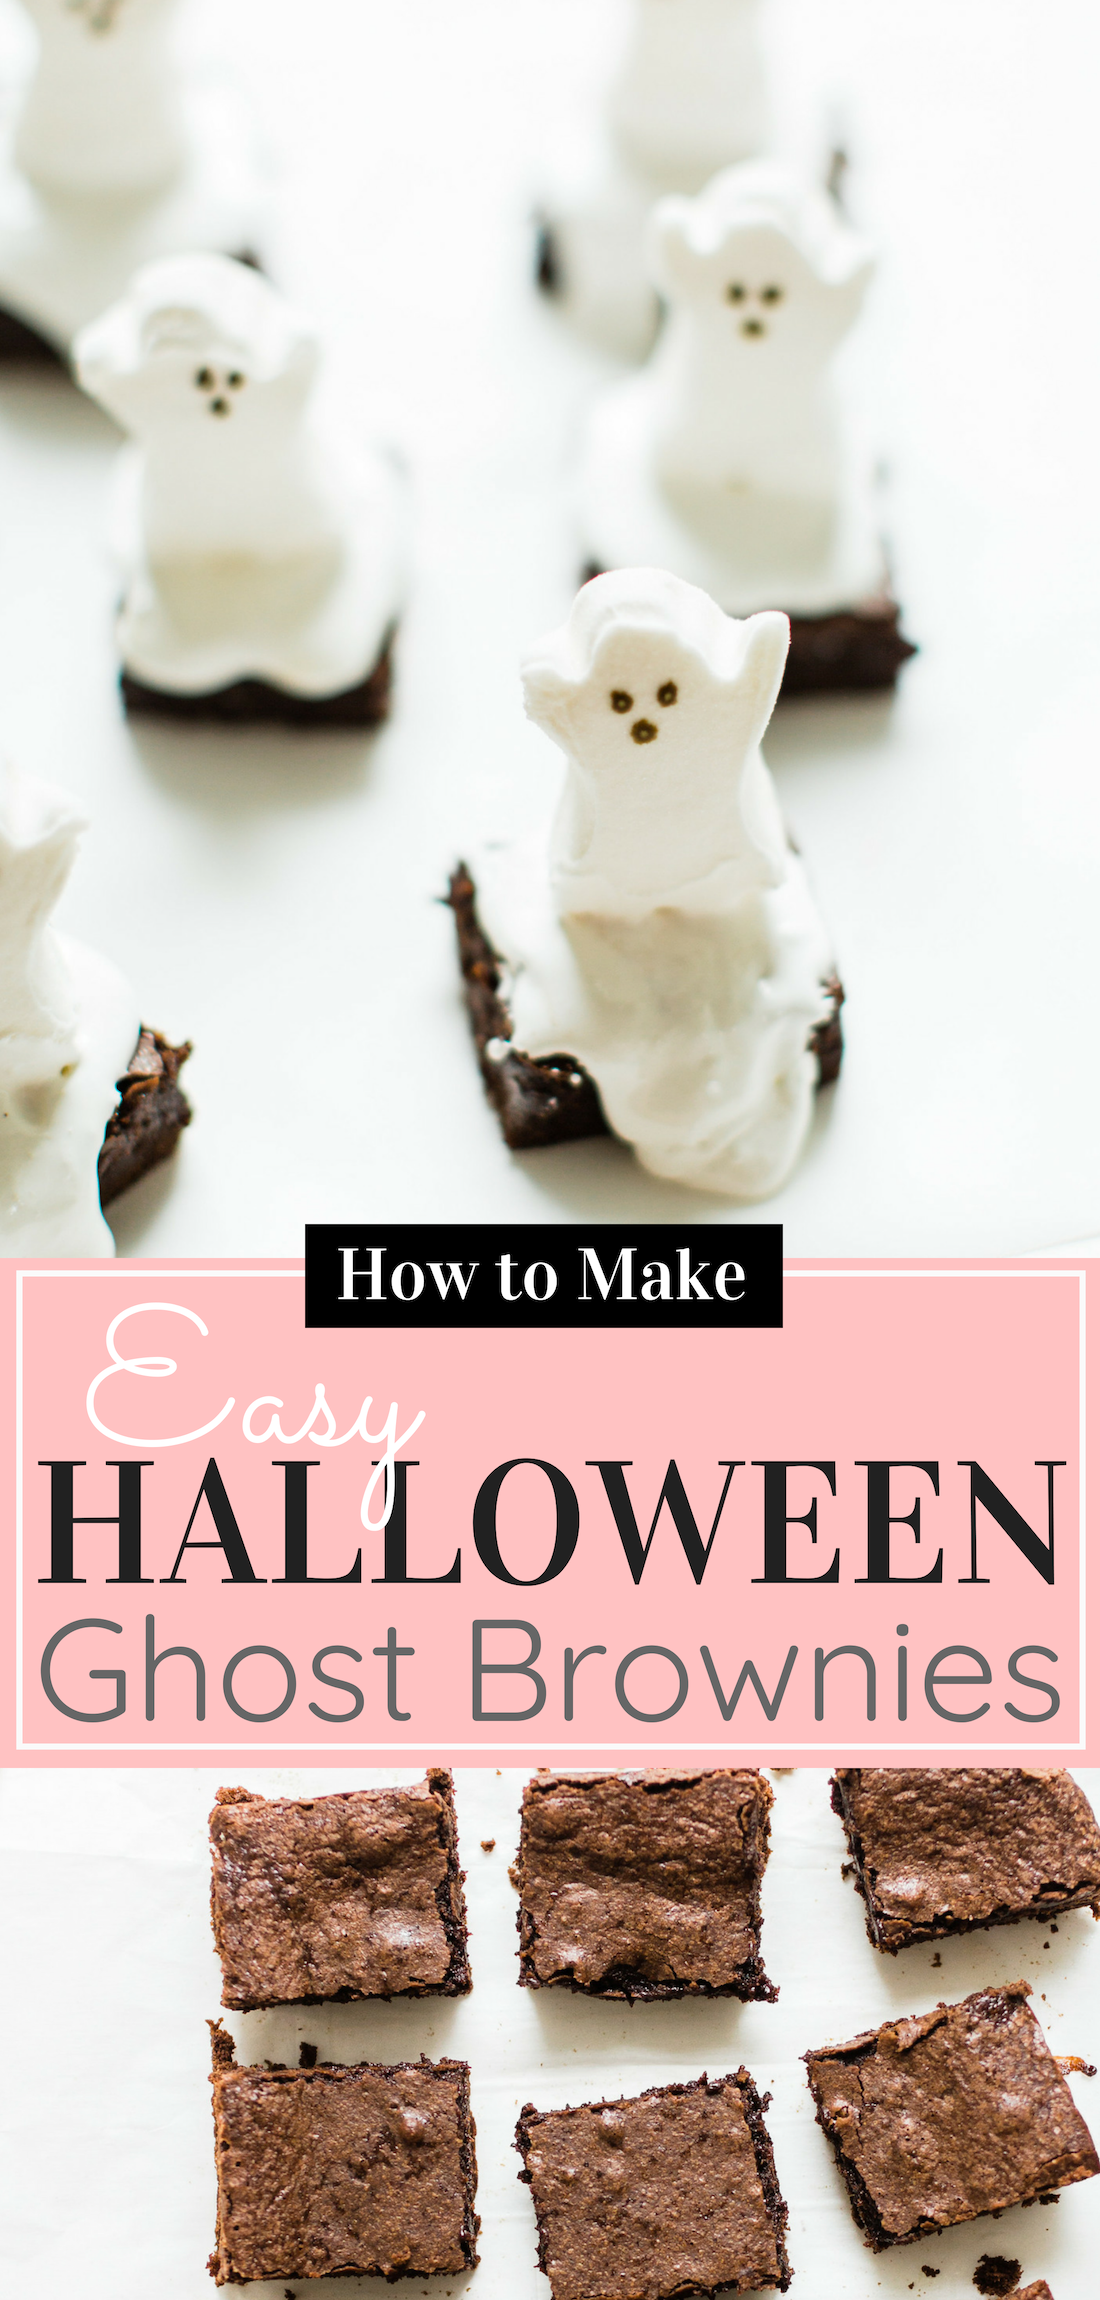 These spooky Halloween ghost brownies are delicious, adorable, and so easy to make. Kids and grownups alike will clamor for these haunted brownies! Click through for the details. #ghostbrownies #halloween #halloweendessert #halloweenbrownies #recipe #halloweenrecipe #diy #diyghostbrownies #halloweendesserts | glitterinc.com | @glitterinc